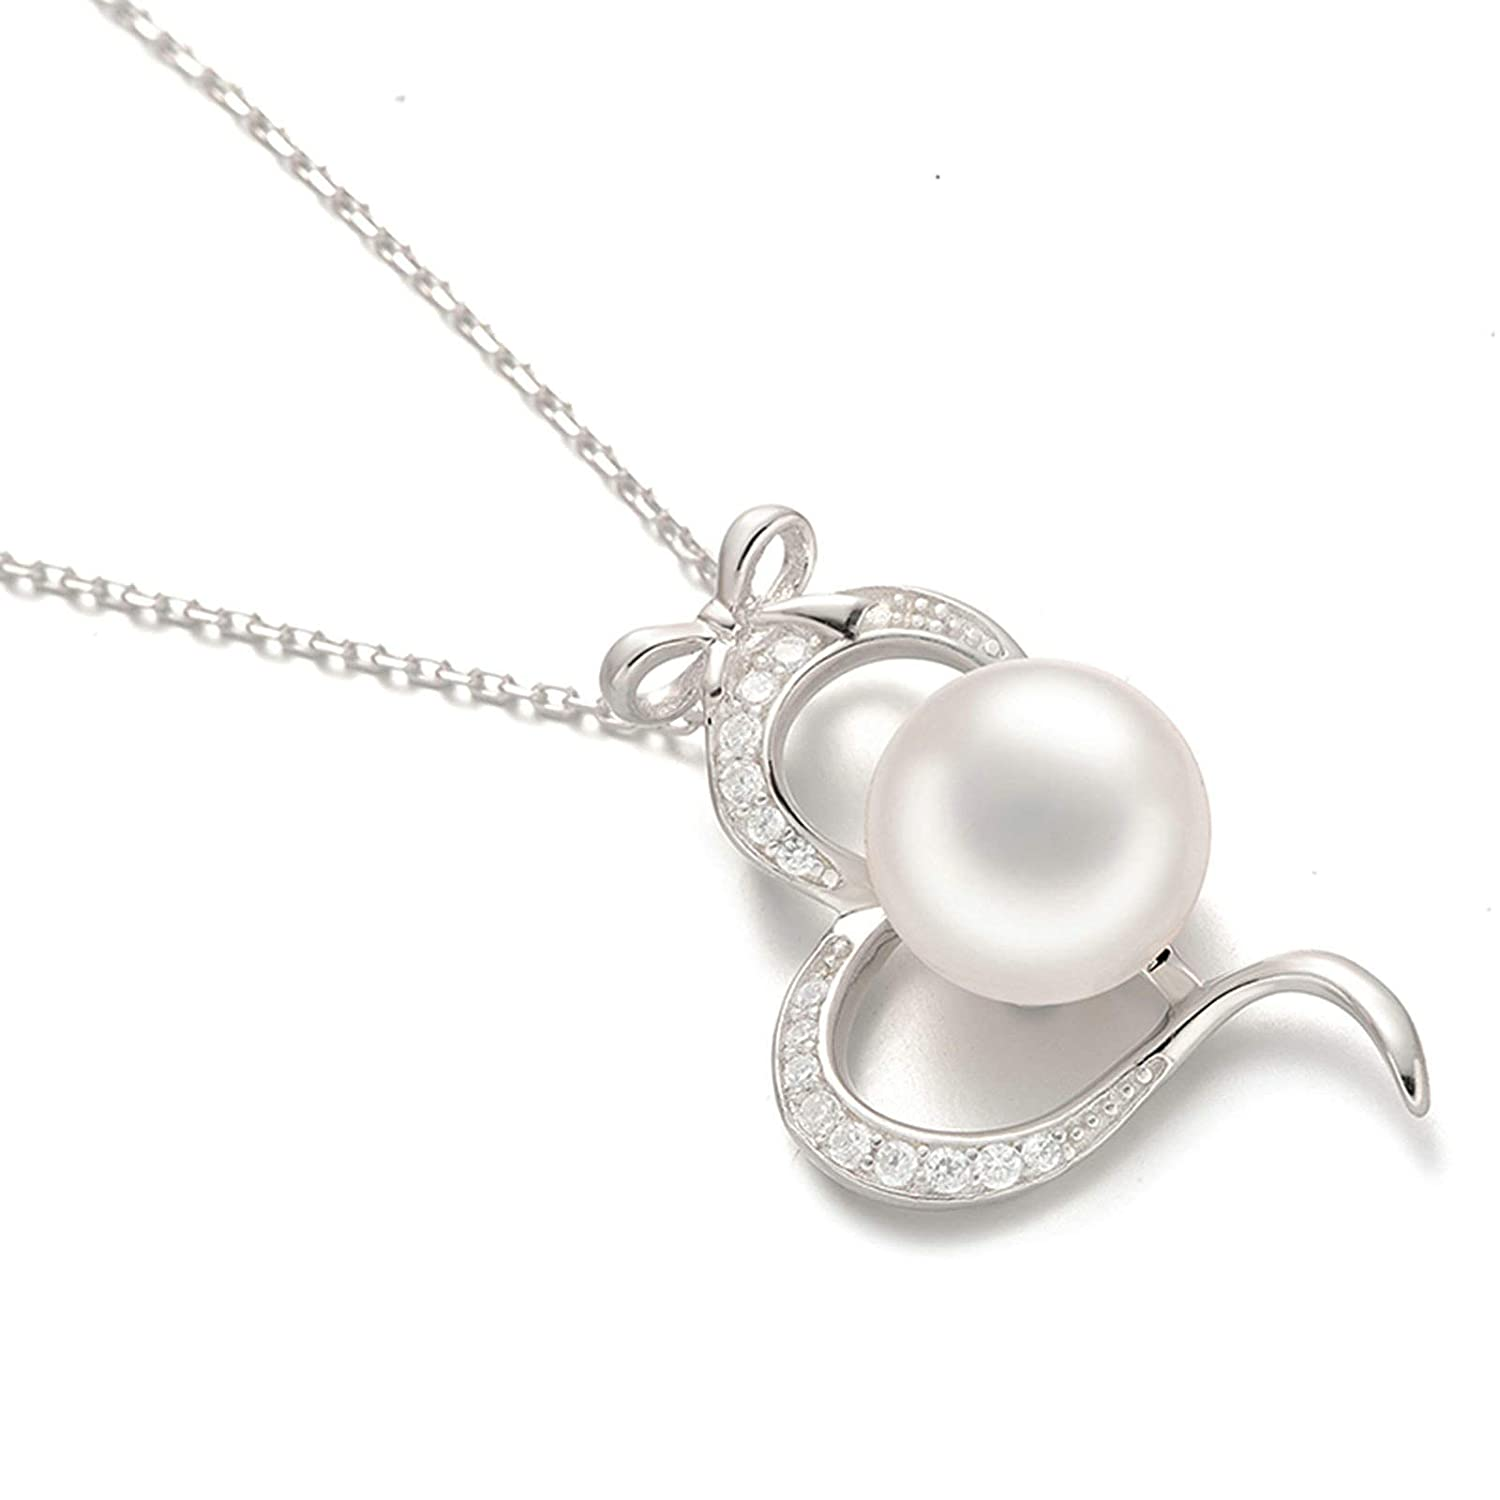 Aooaz Silver Material Necklace Women Girls Heart Bow Shape Pendant Necklaces Wedding